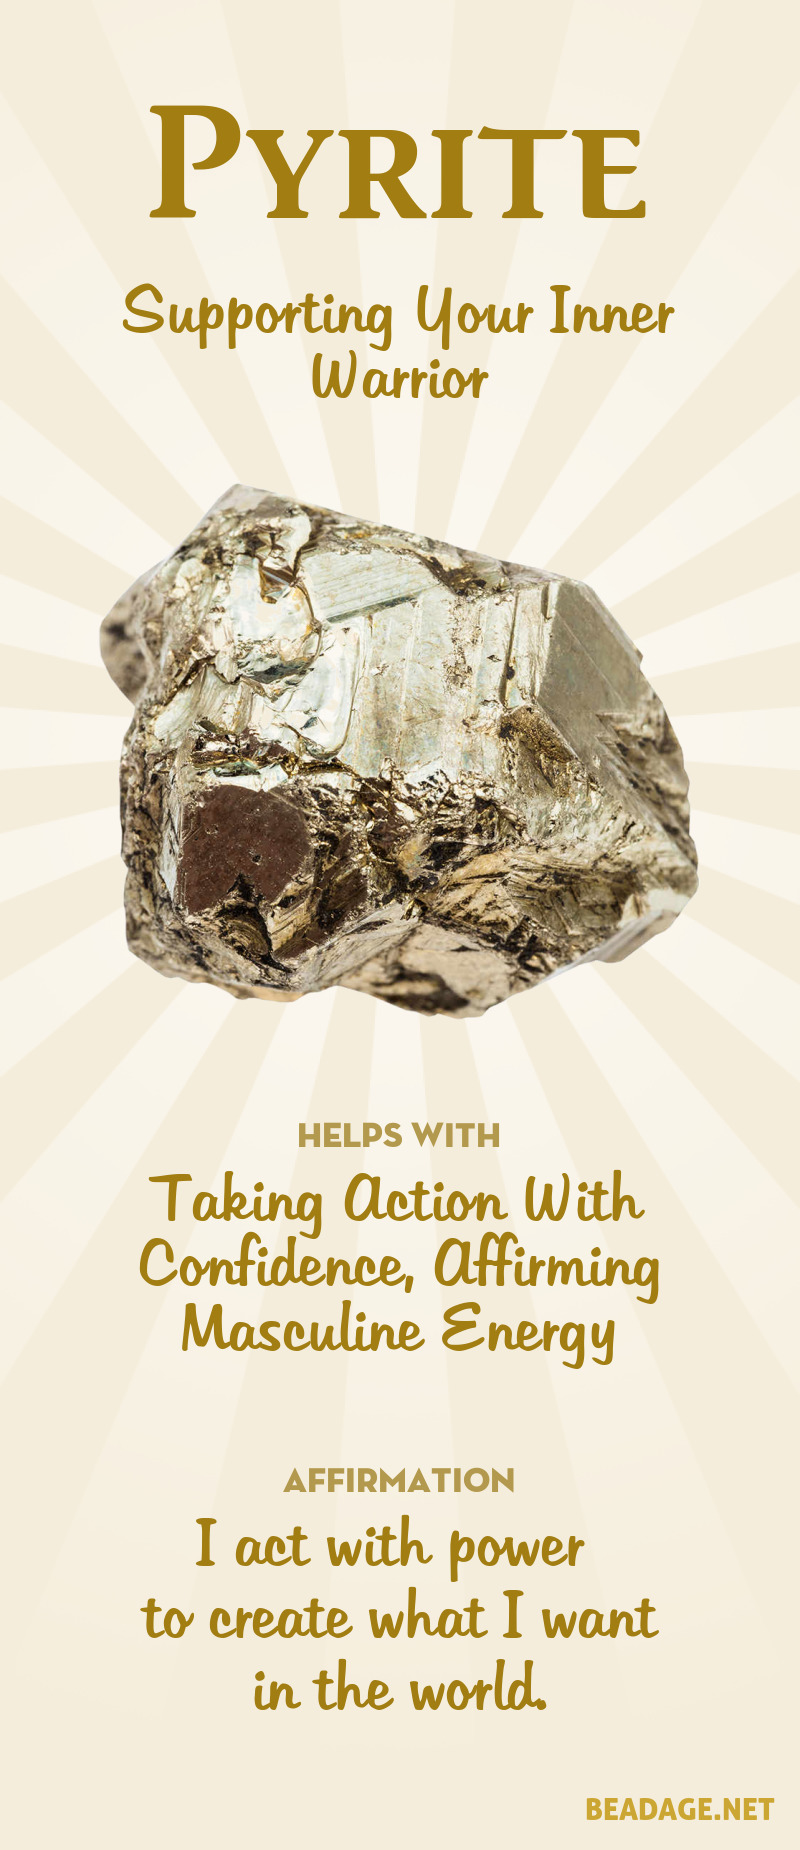 Pyrite Meaning & Healing Properties | Learn gemstone meanings, gemstone information, crystal healing, stone powers, chakra stones, & pyrite benefits. Get some positive energy & vibes! #gemstones #crystals #crystalhealing #beadage  #pyrite